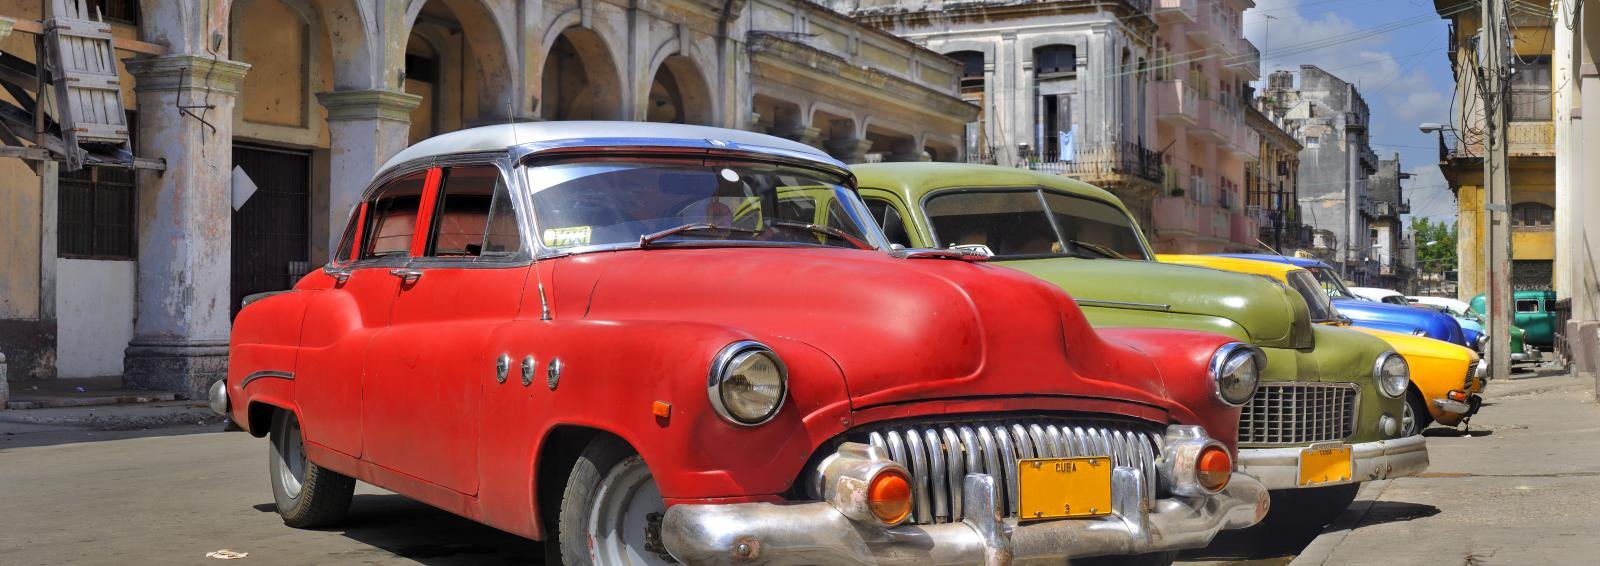 CUBA! Why it Should be on Your Travel Bucket List